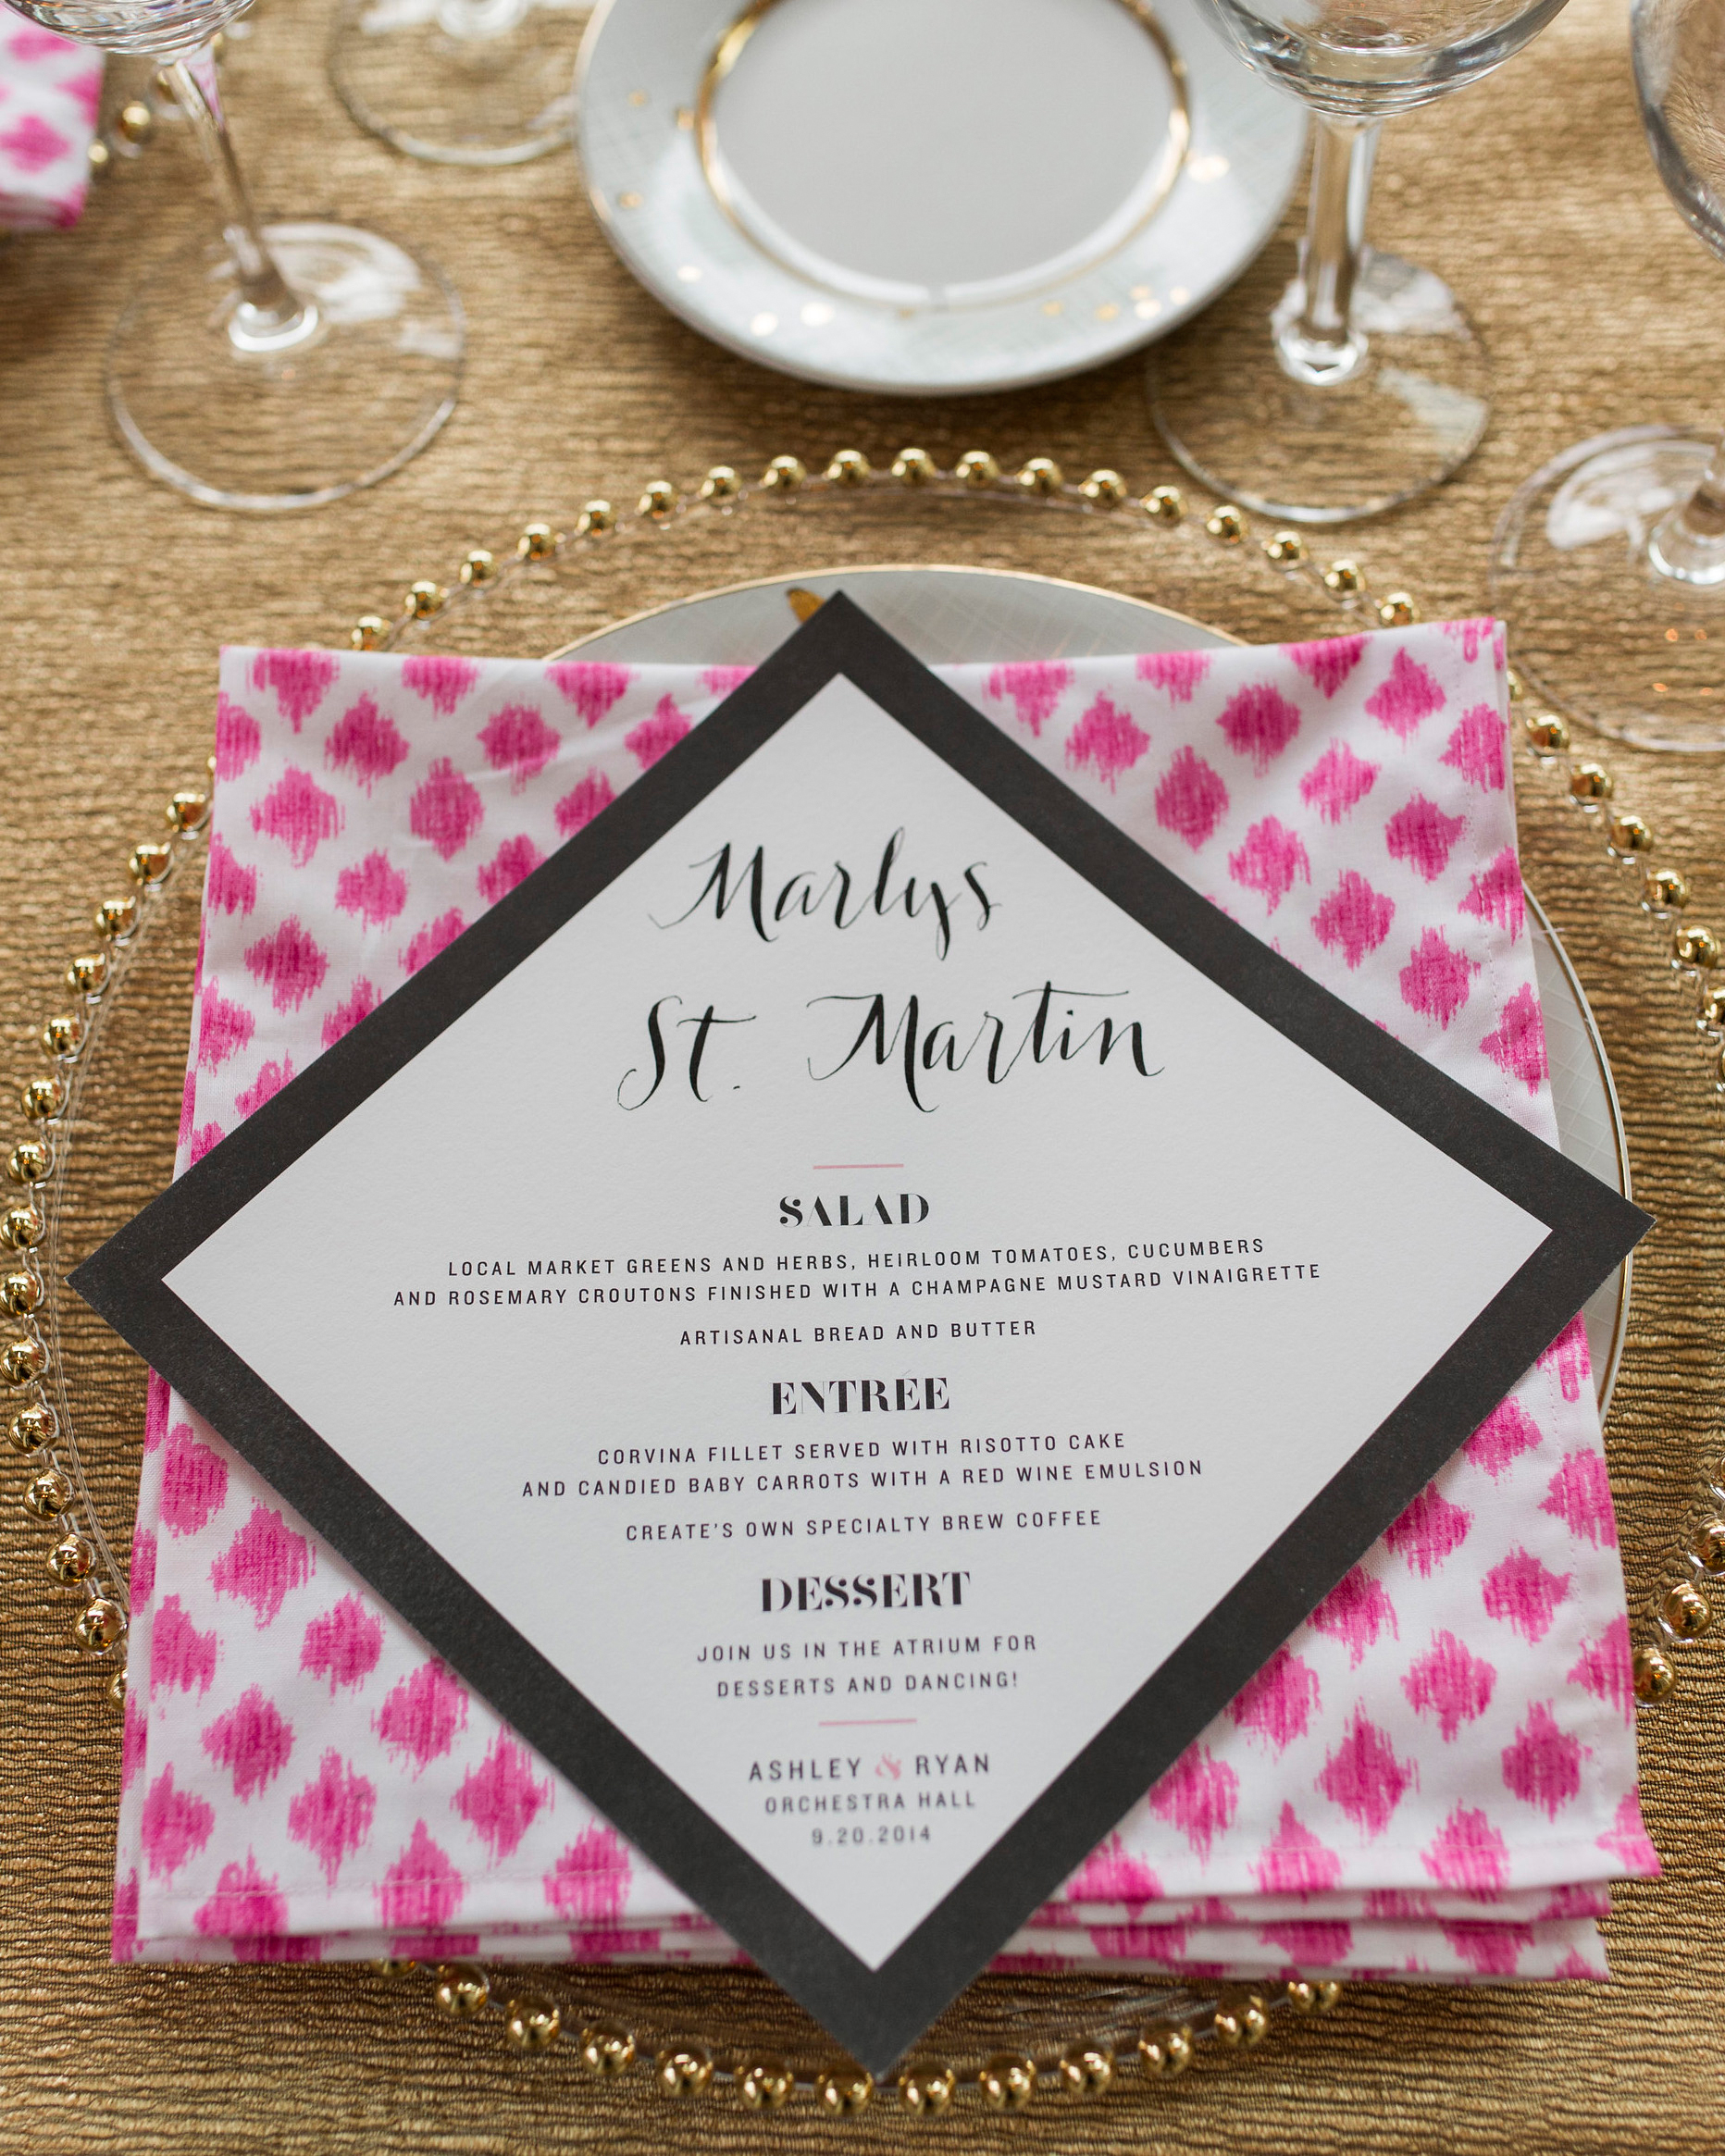 ashley-ryan-wedding-placesetting-11219-s111852-0415.jpg